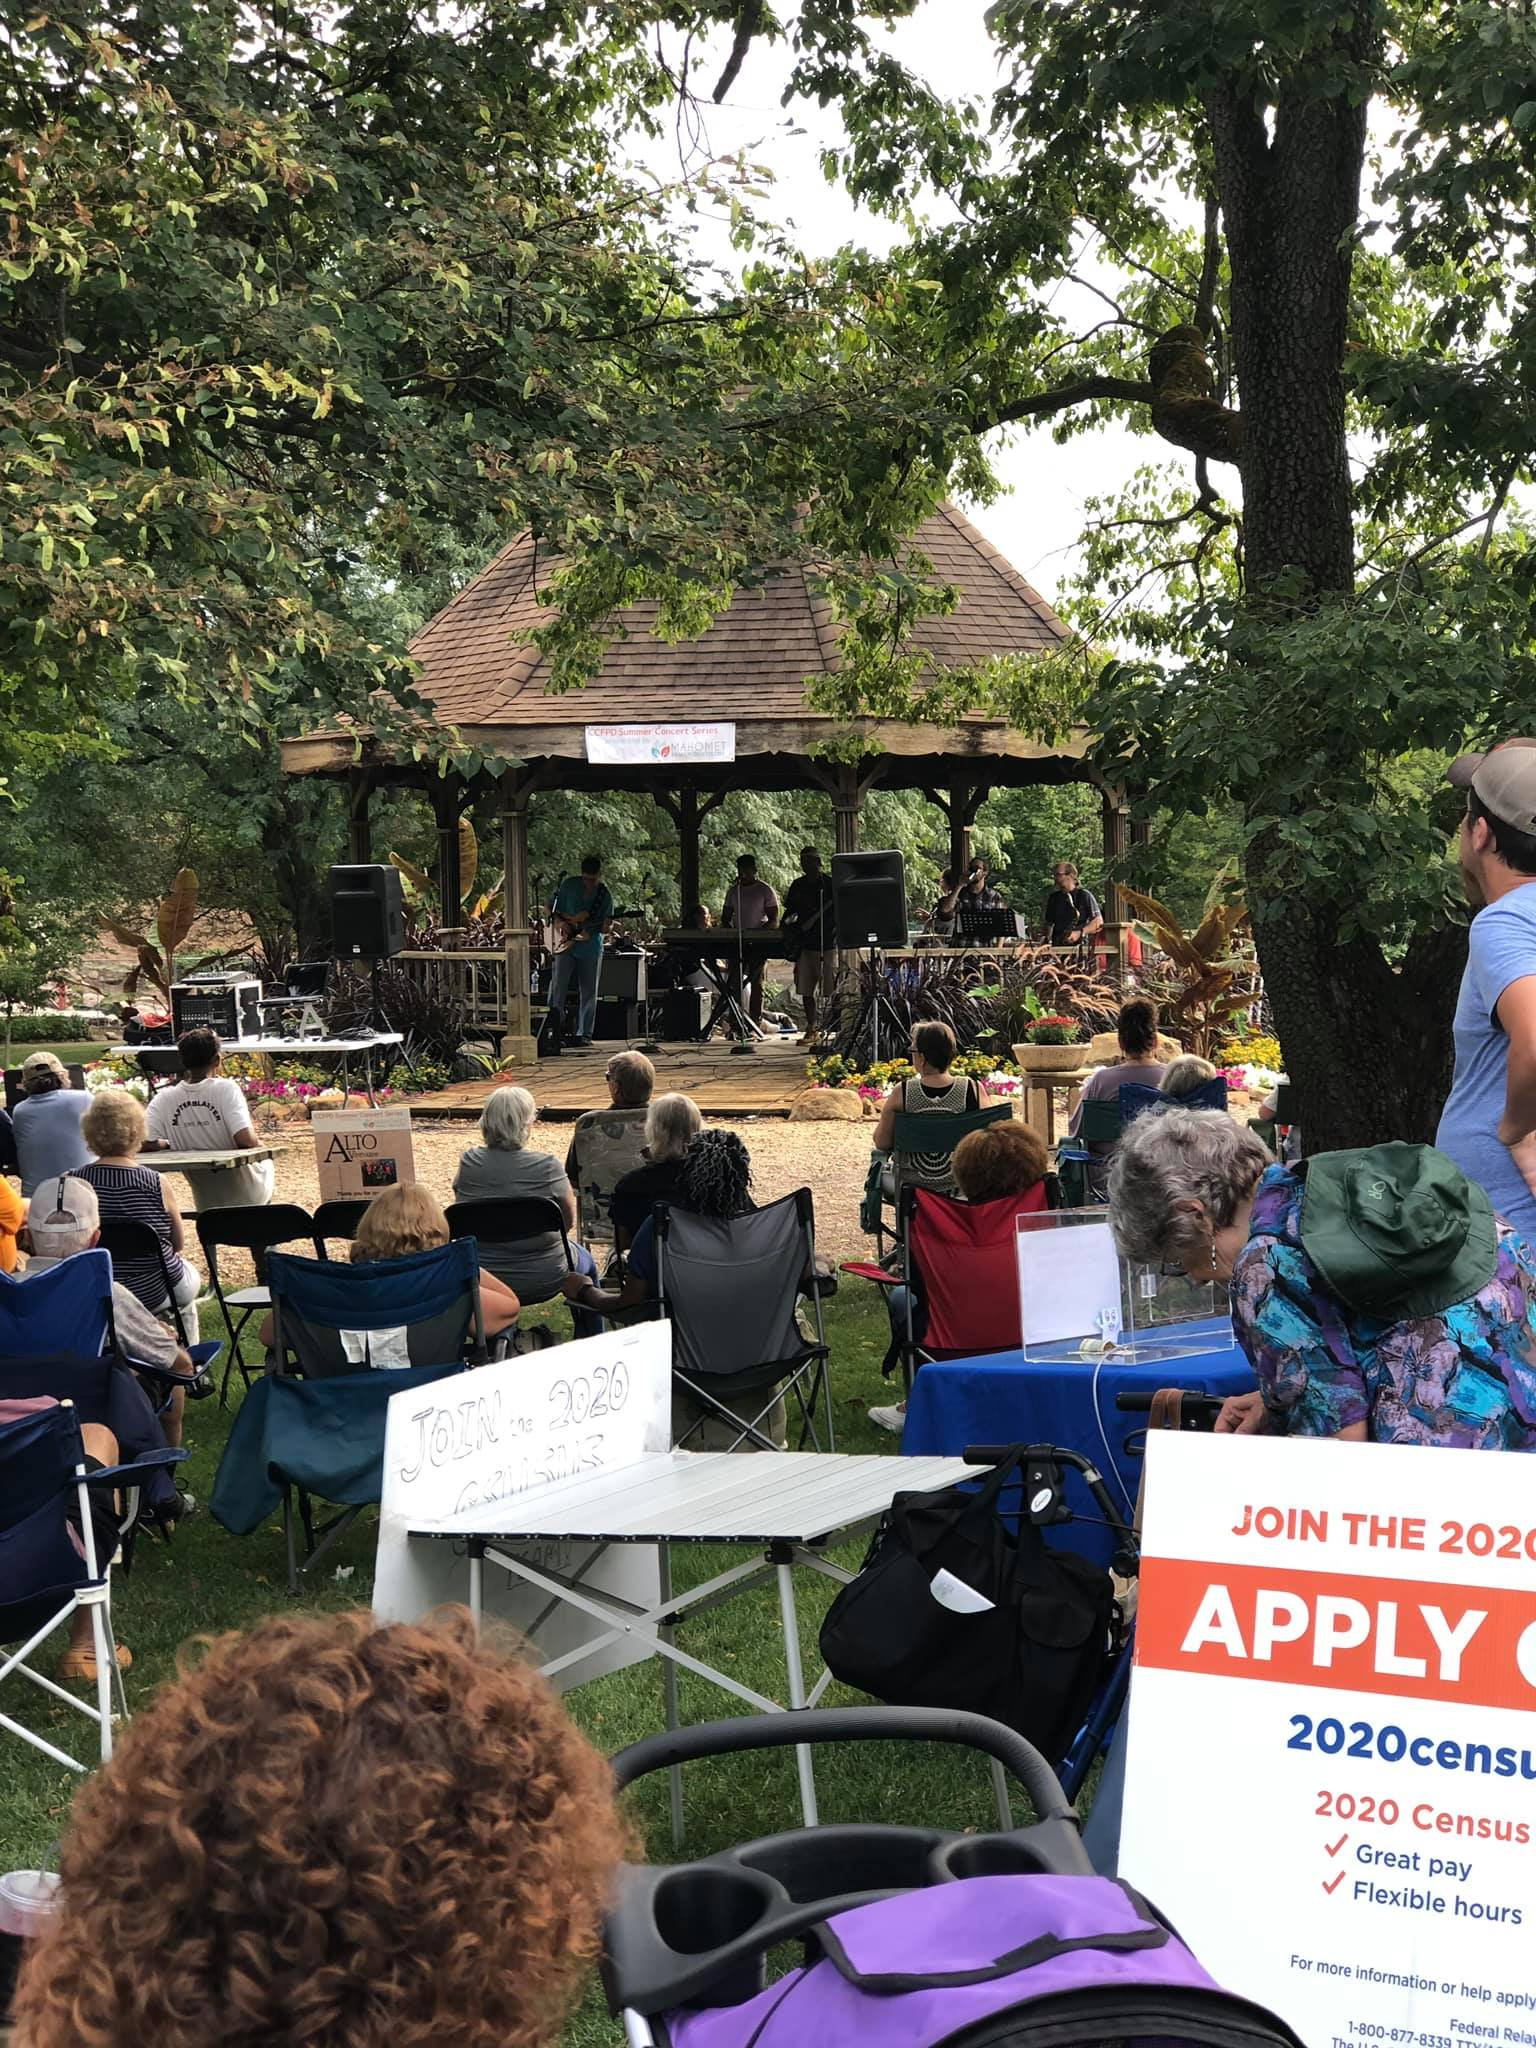 Concert held in the Botanical Garden's gazebo